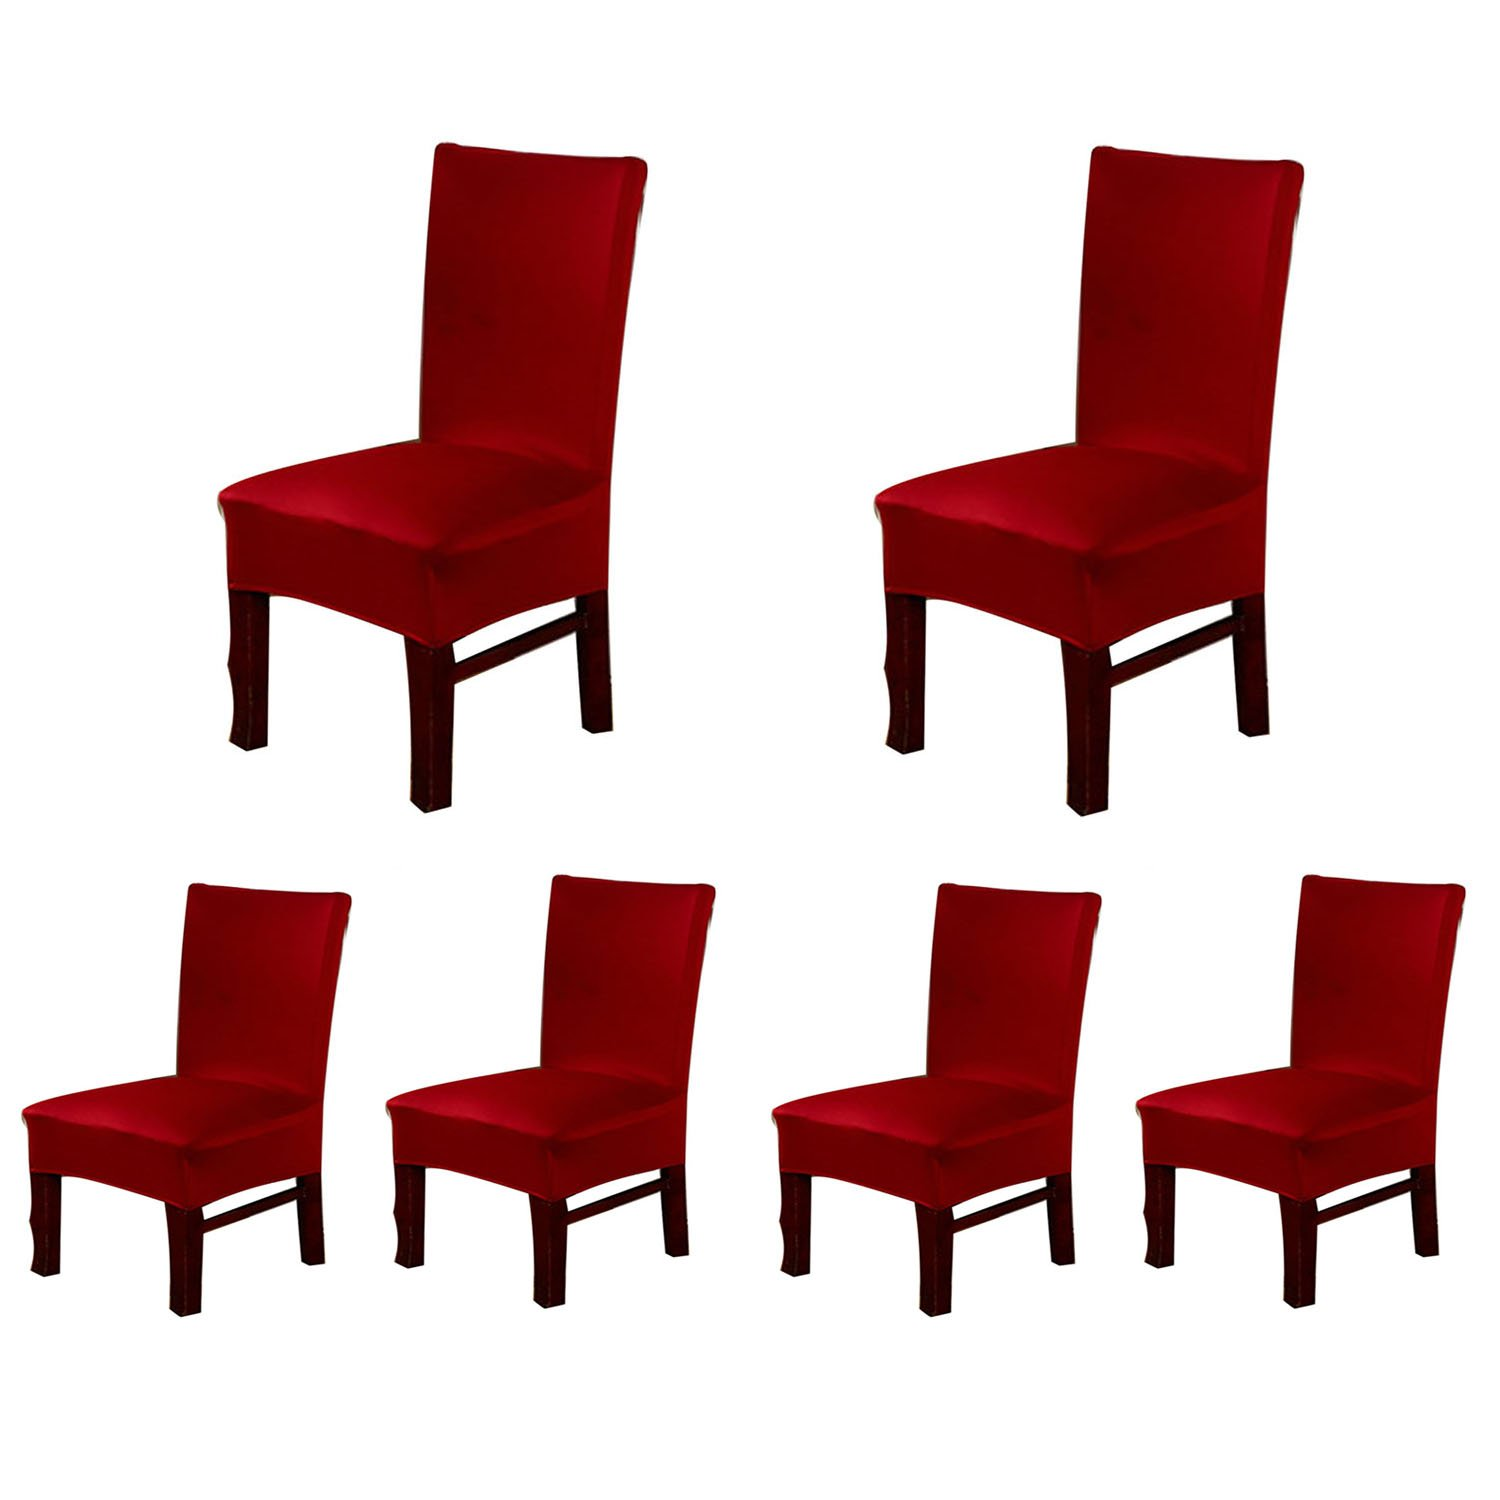 Jiuhong Stretch Removable Washable Short Dining Chair Protector Cover Slipcover, Style 01, 1 Pack JHTAO-0001-01-01